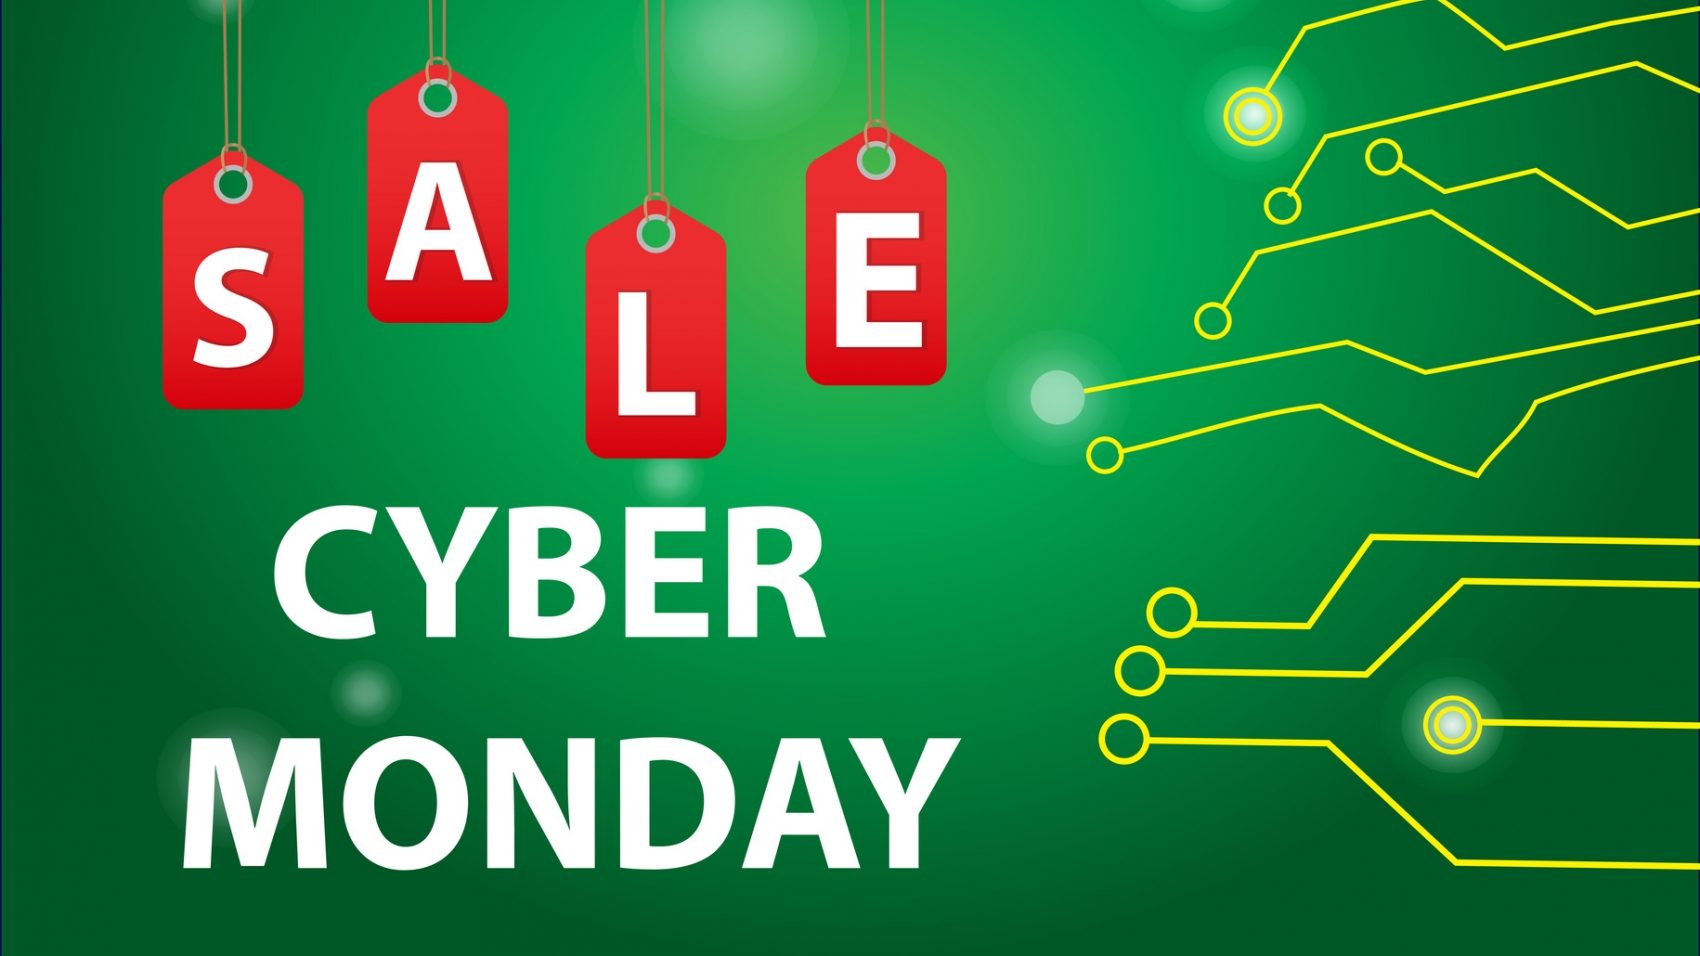 Cyber Monday sales, Cyber Monday Super offer discounts. Cyber Monday poster, banner. Vector illustration